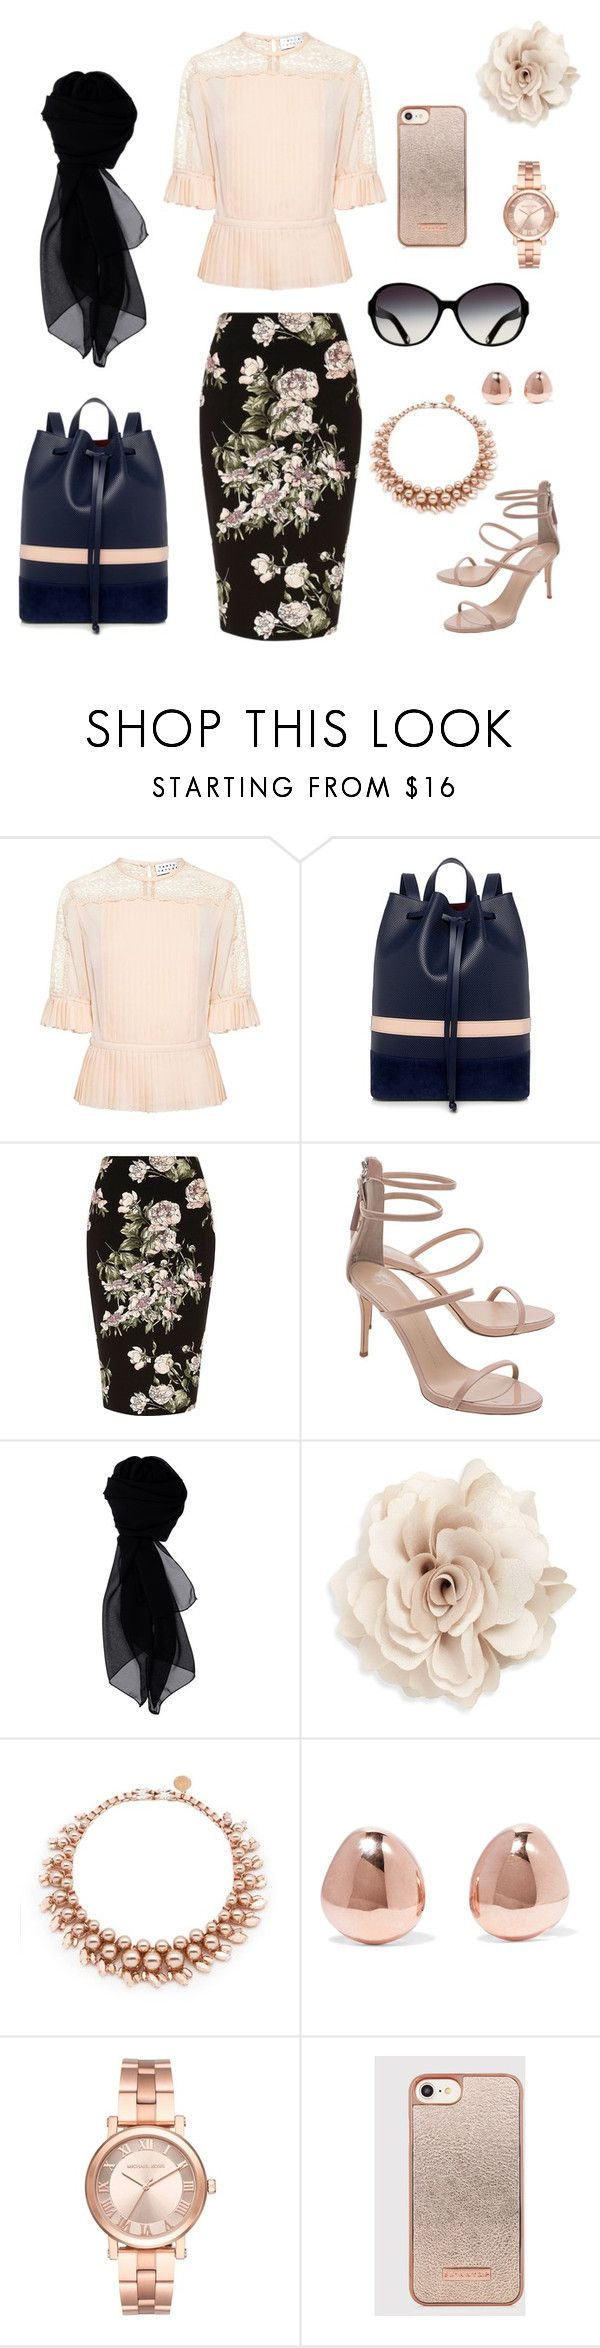 """""""P. G. # 45"""" by patricia-gonzalez-1 ❤ liked on Polyvore featuring Tanya Taylor, Mother of Pearl, River Island, Giuseppe Zanotti, KOCCA, Cara, Ellen Conde, Monica Vinader and Michael Kors"""